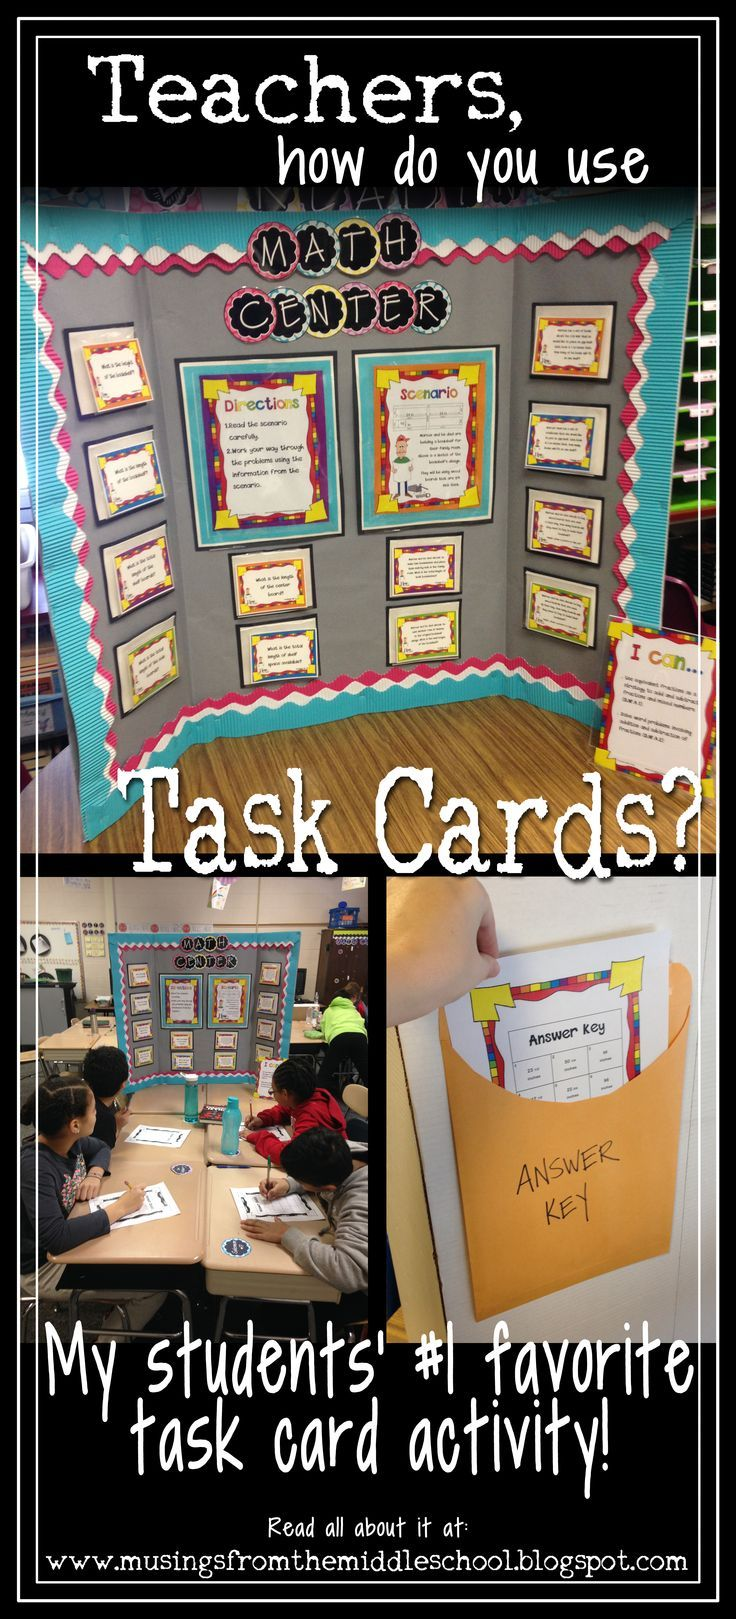 Great ideas for learning stations in middle school and upper elementary.